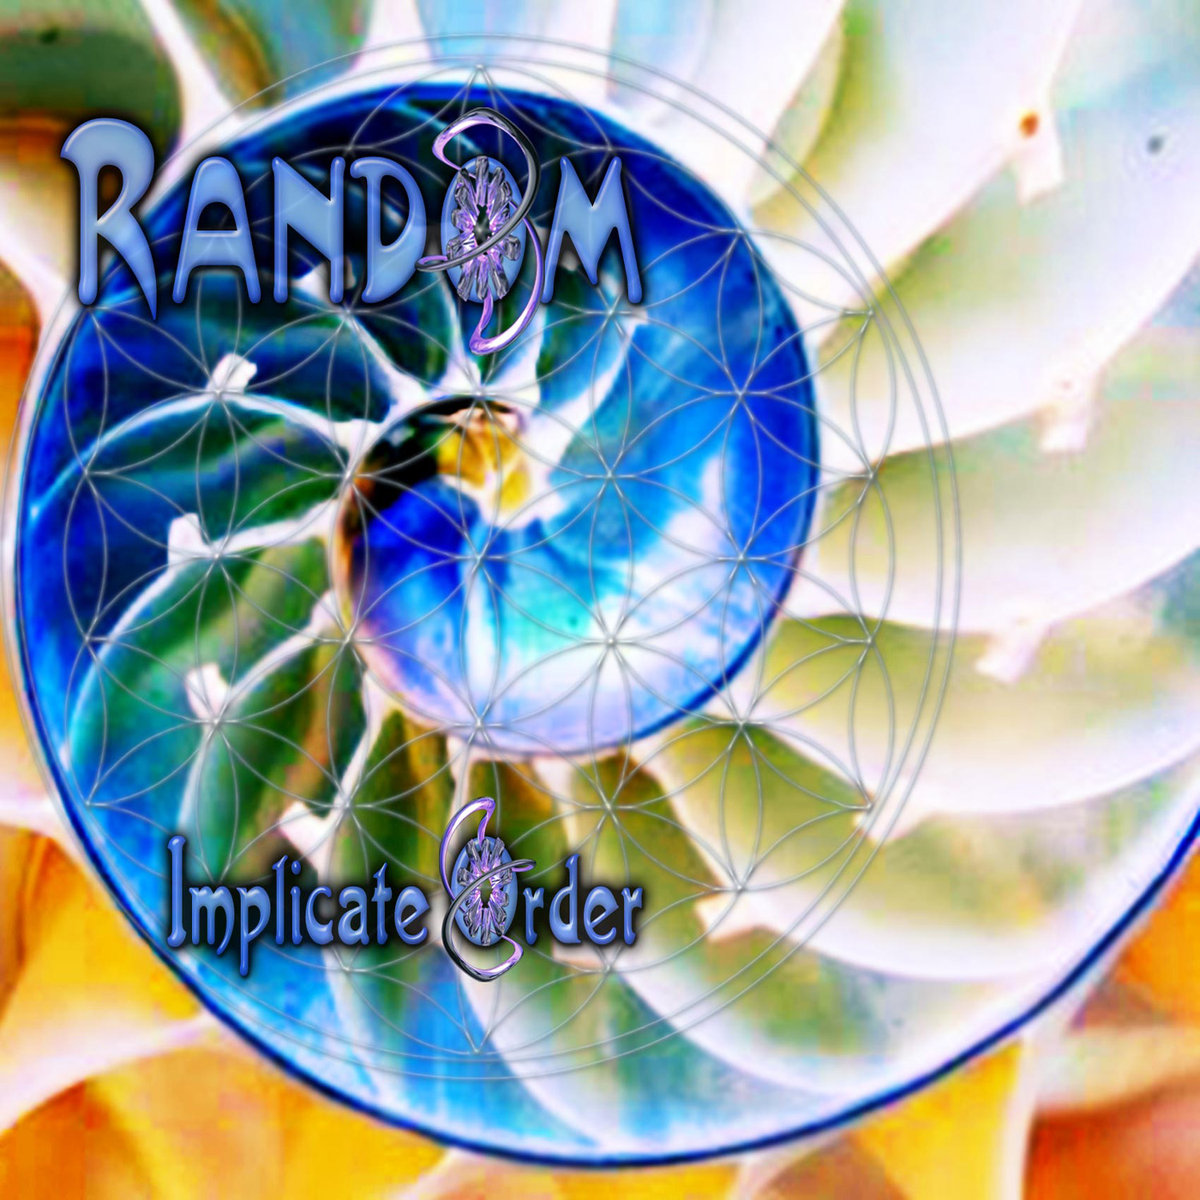 Random - Design Possibilities @ 'The Implicate Order' album (electronic, goa)